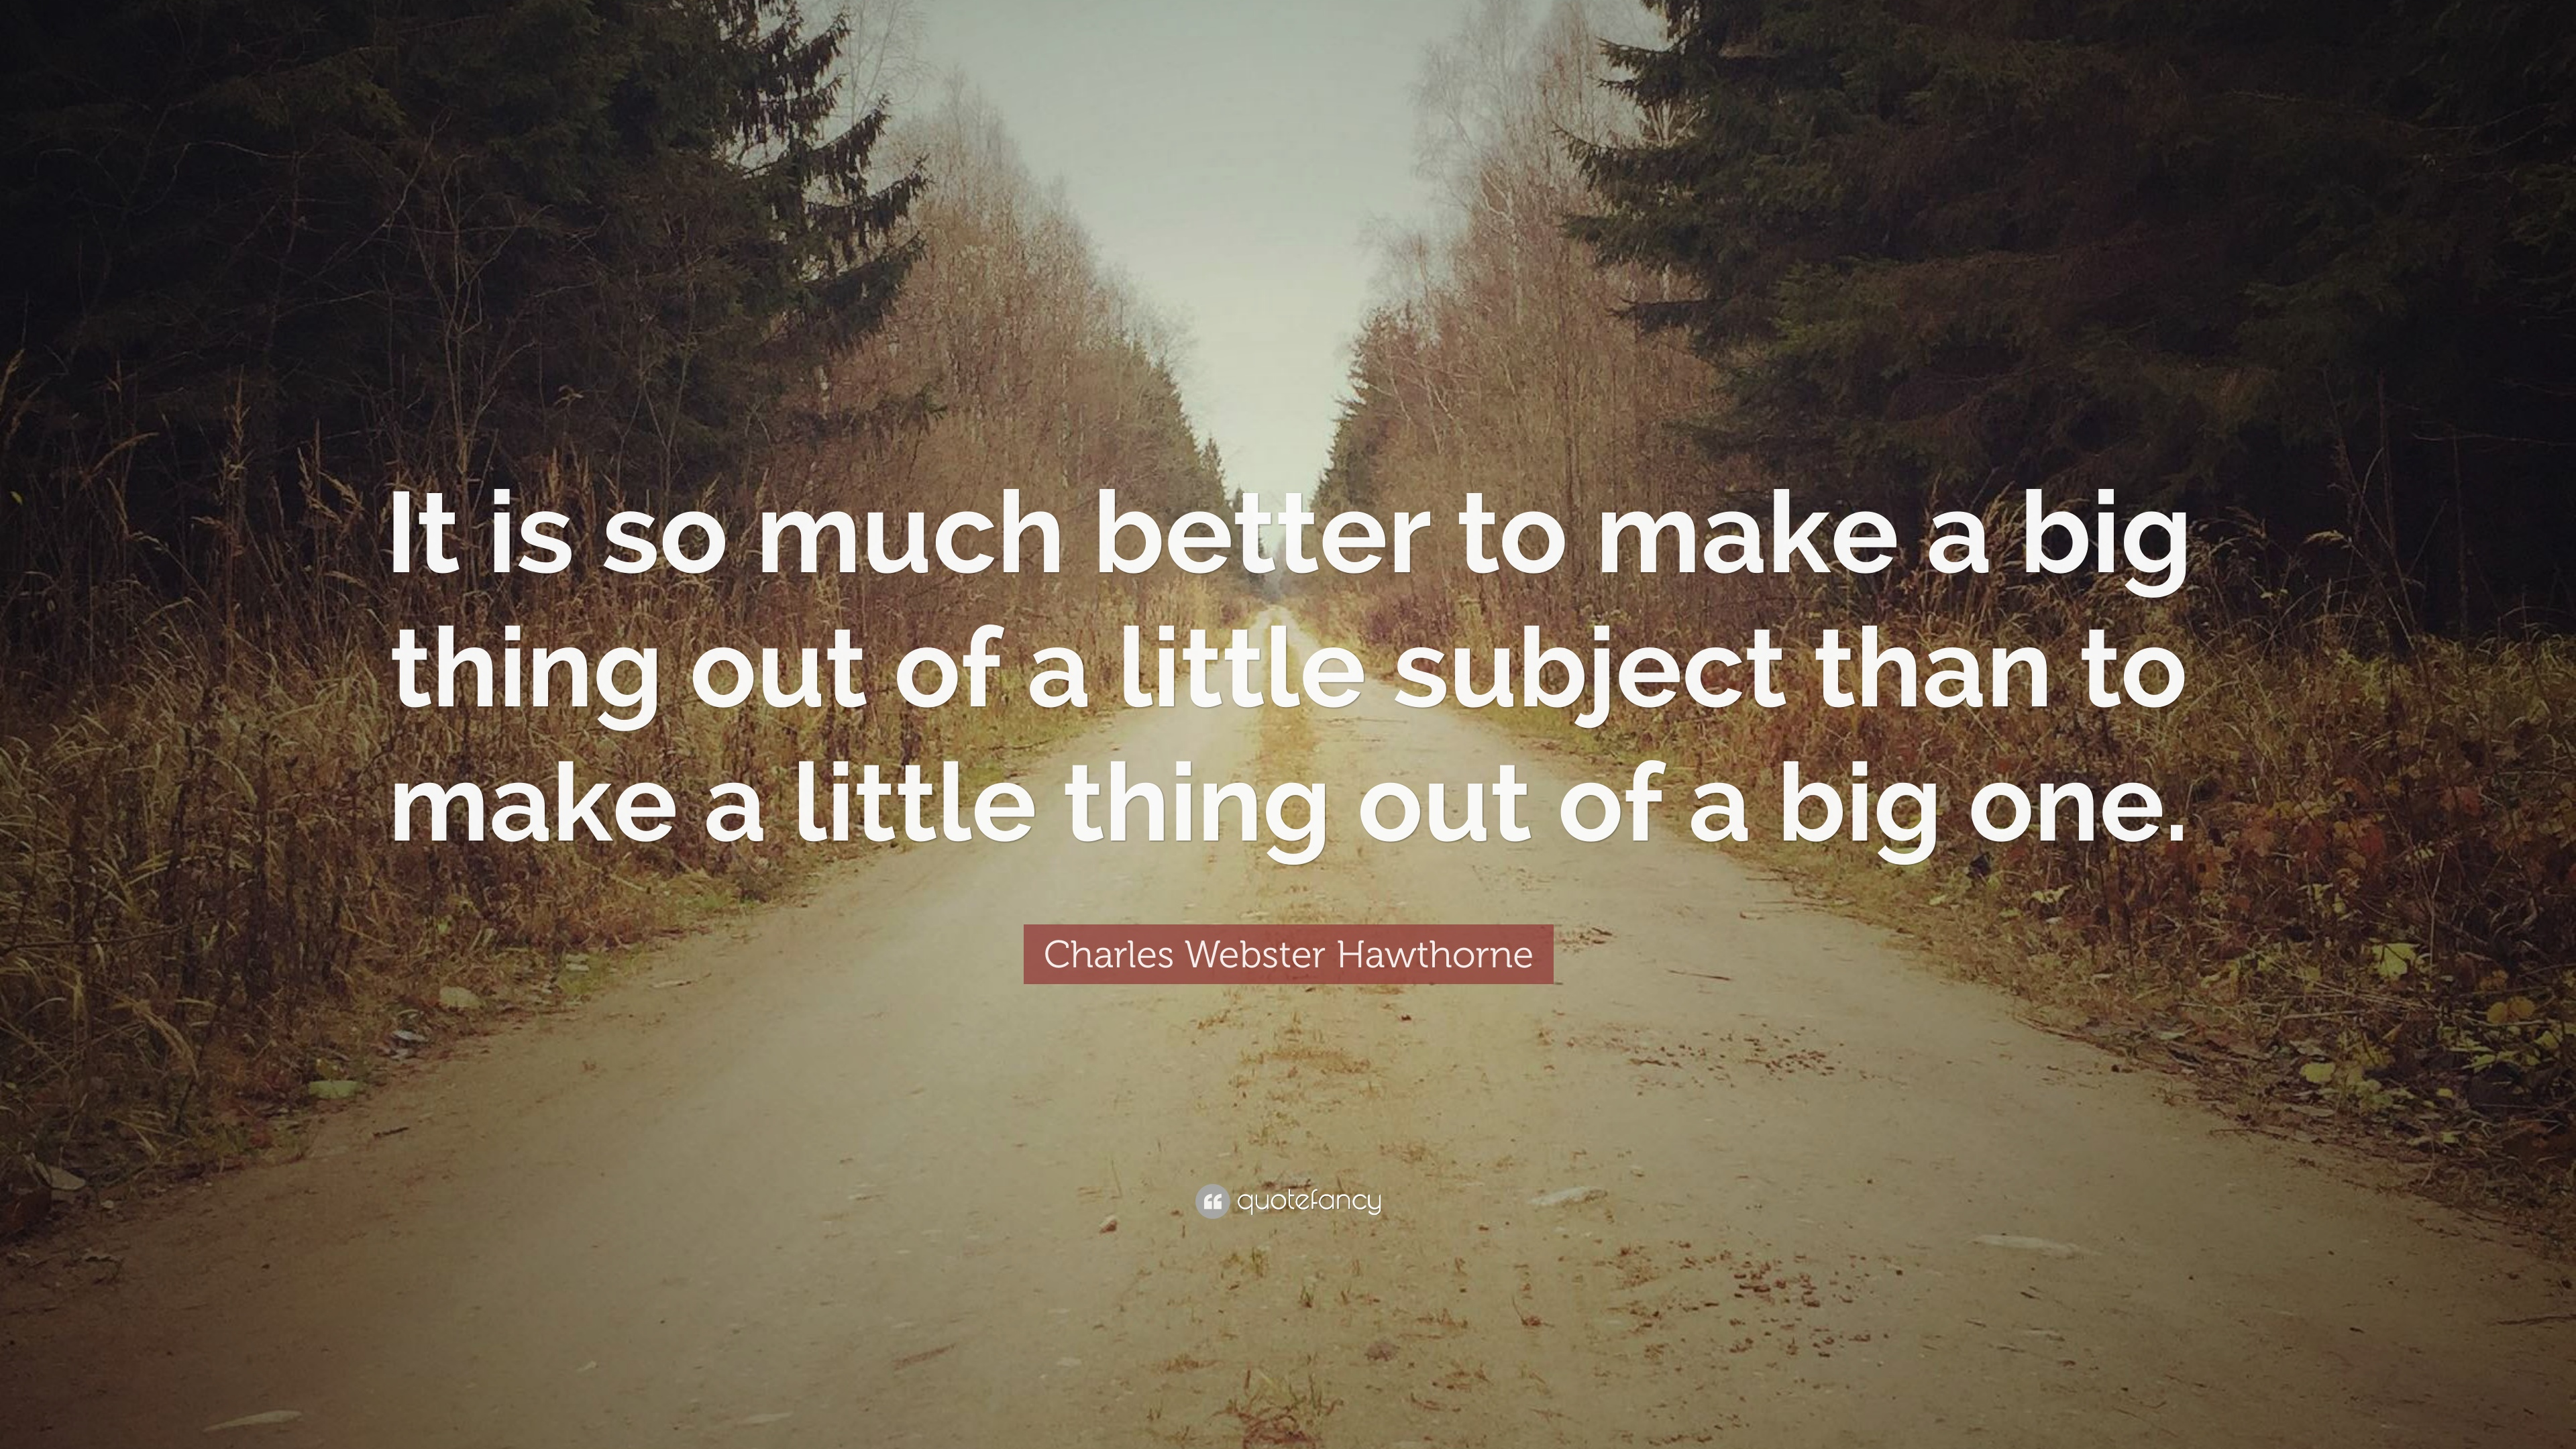 A little thing is better than big idleness: the meaning of the proverb 25